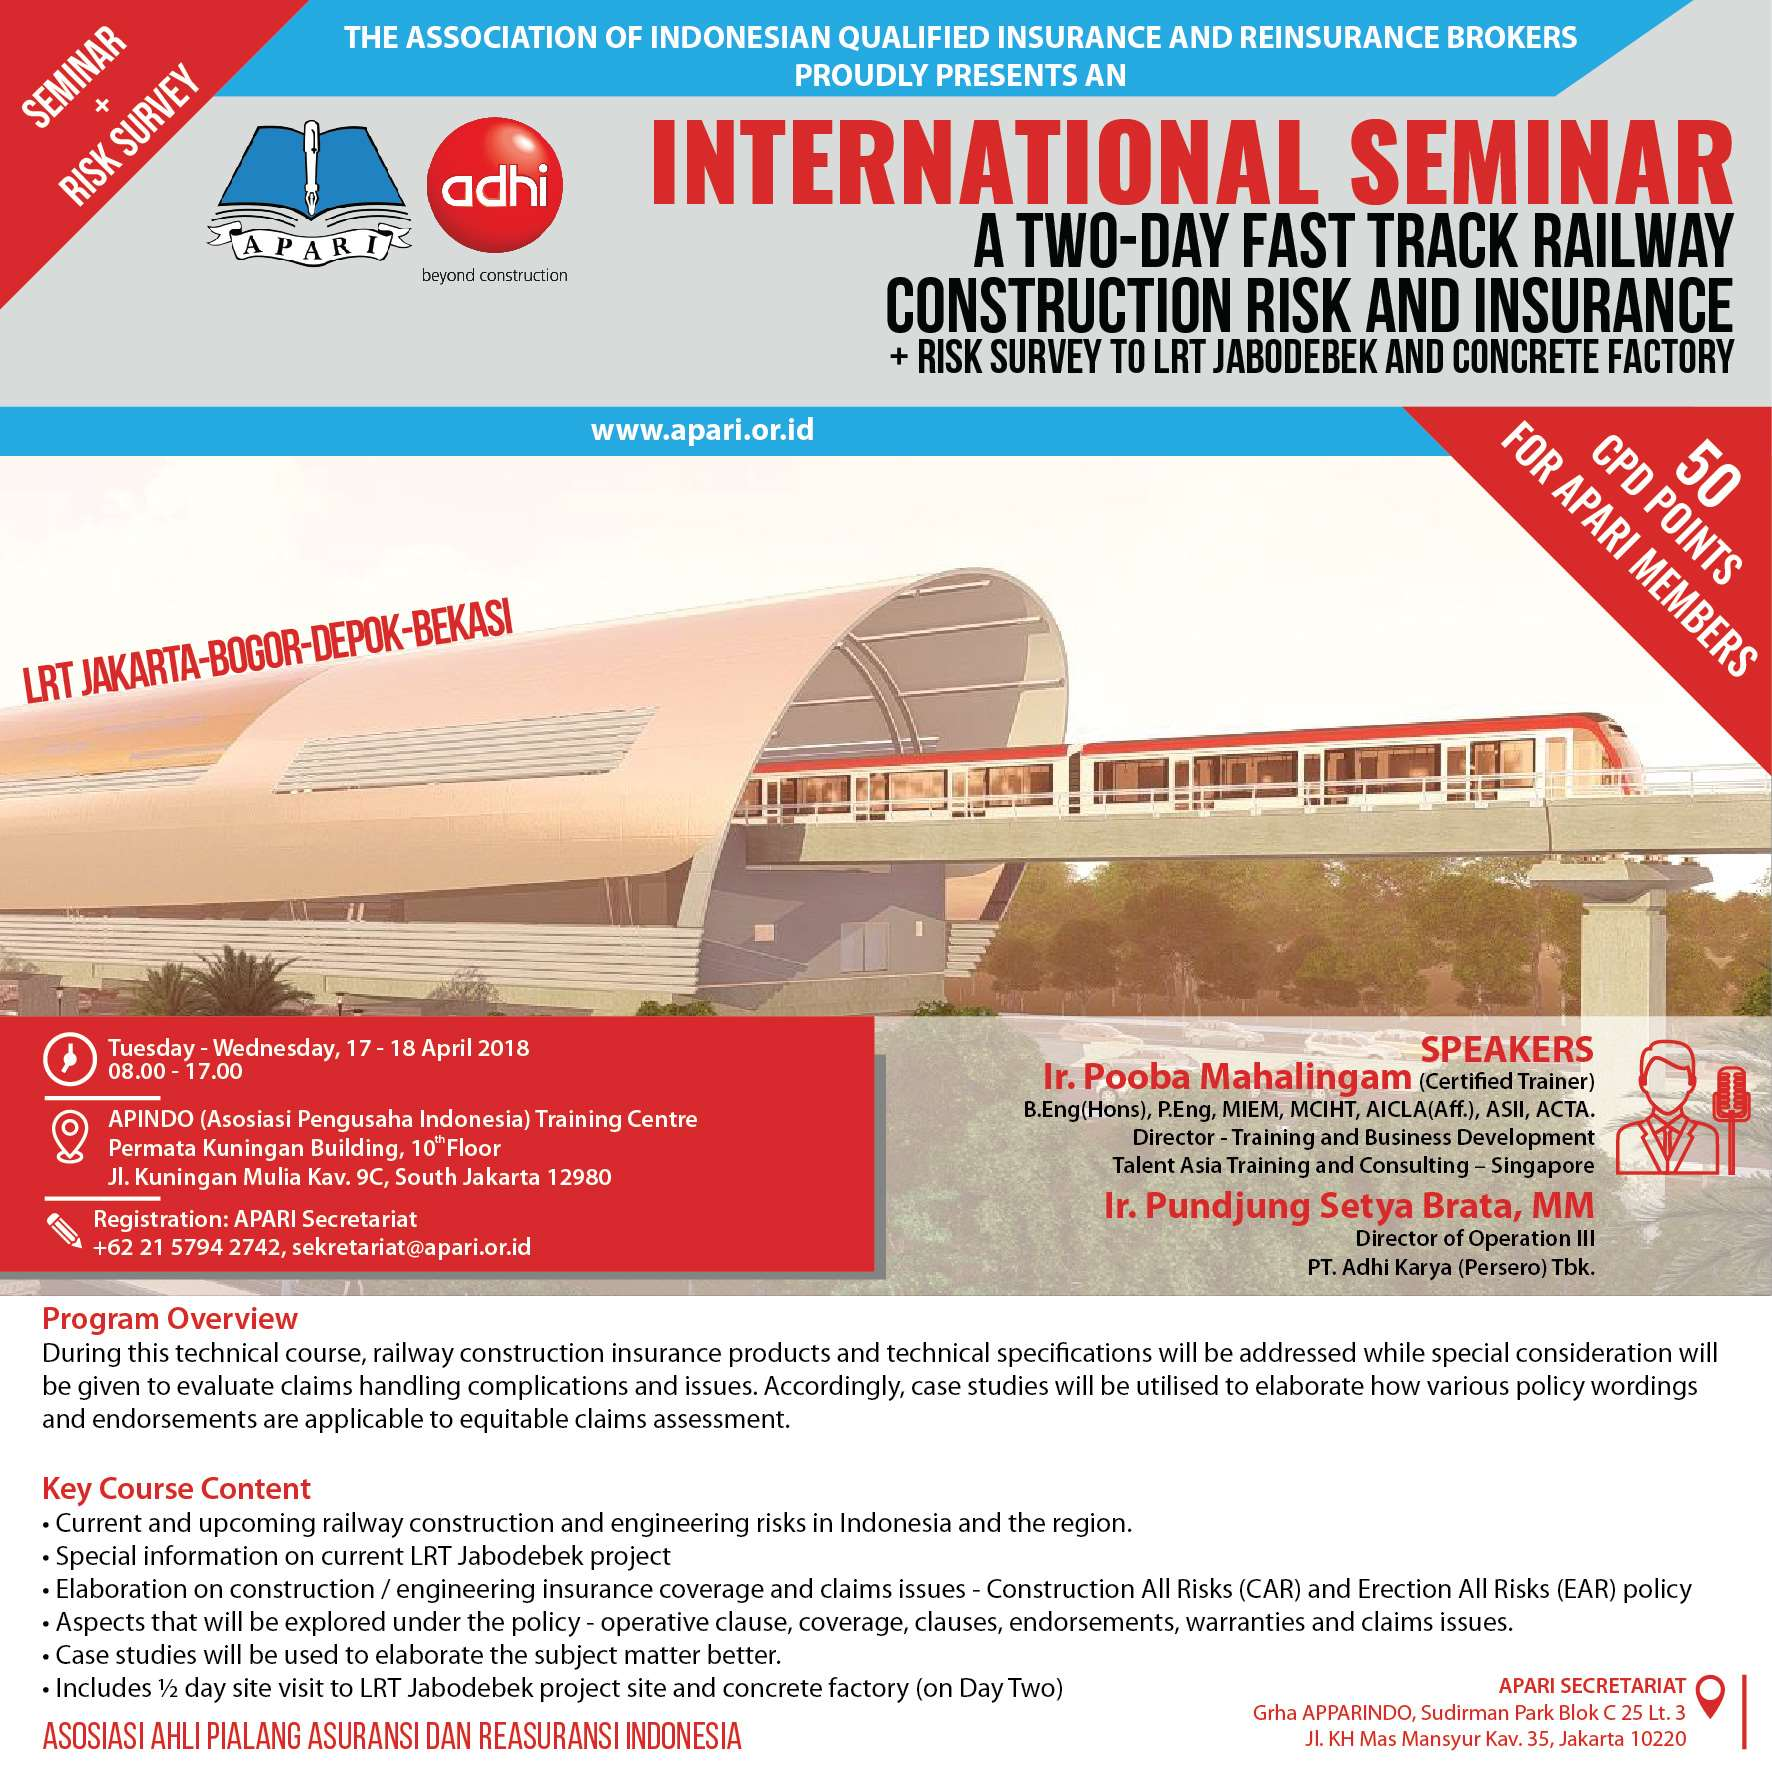 international-seminar-railway-construction-project-a-two-day-fast-track-railway-construction-risk-and-insurance-with-risk-survey-to-lrt-jabodebek-project-site-and-concrete-factory-pt-adhi-karya-perse